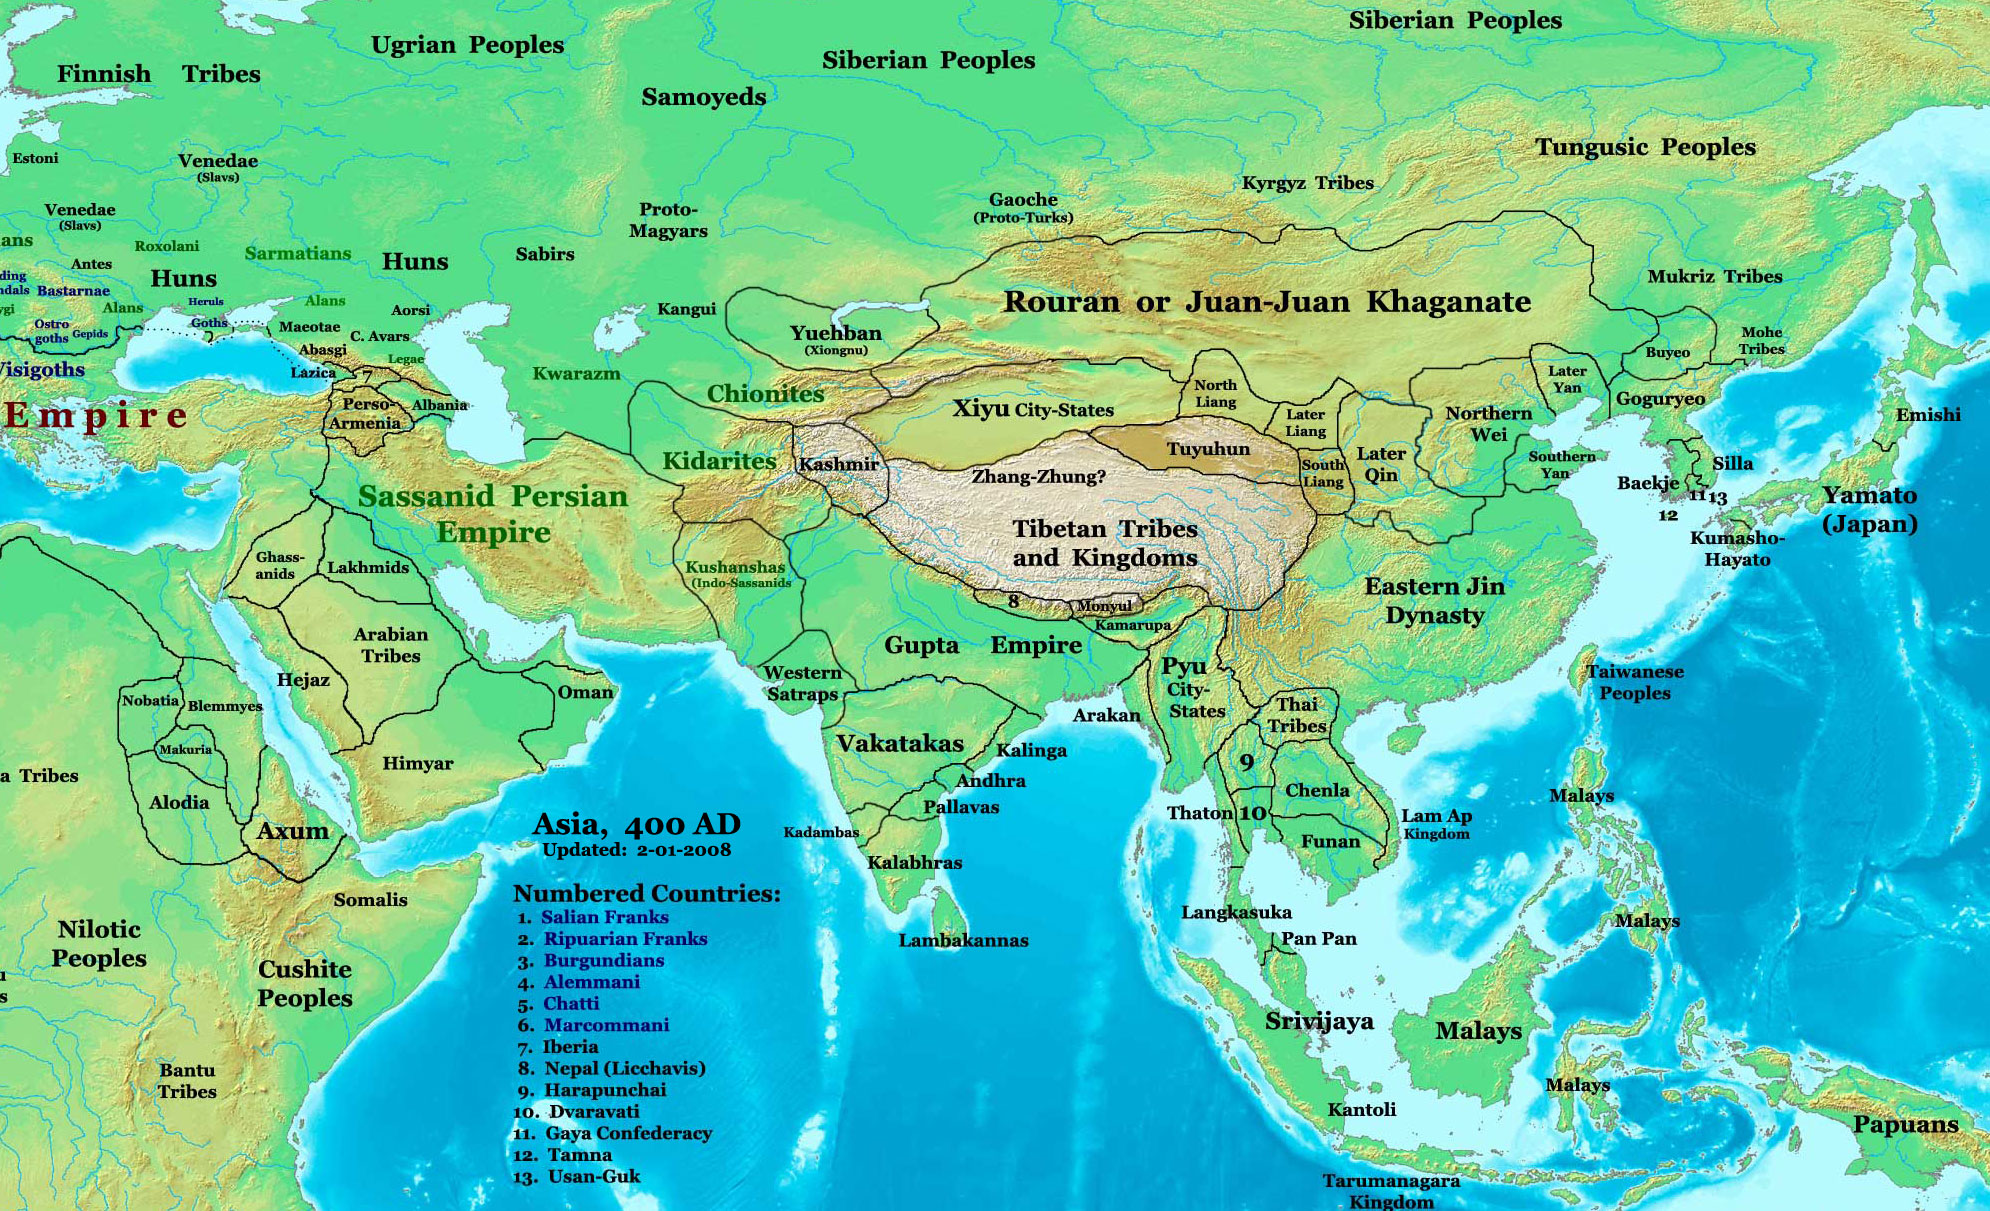 http://upload.wikimedia.org/wikipedia/commons/8/80/Asia_400ad.jpg